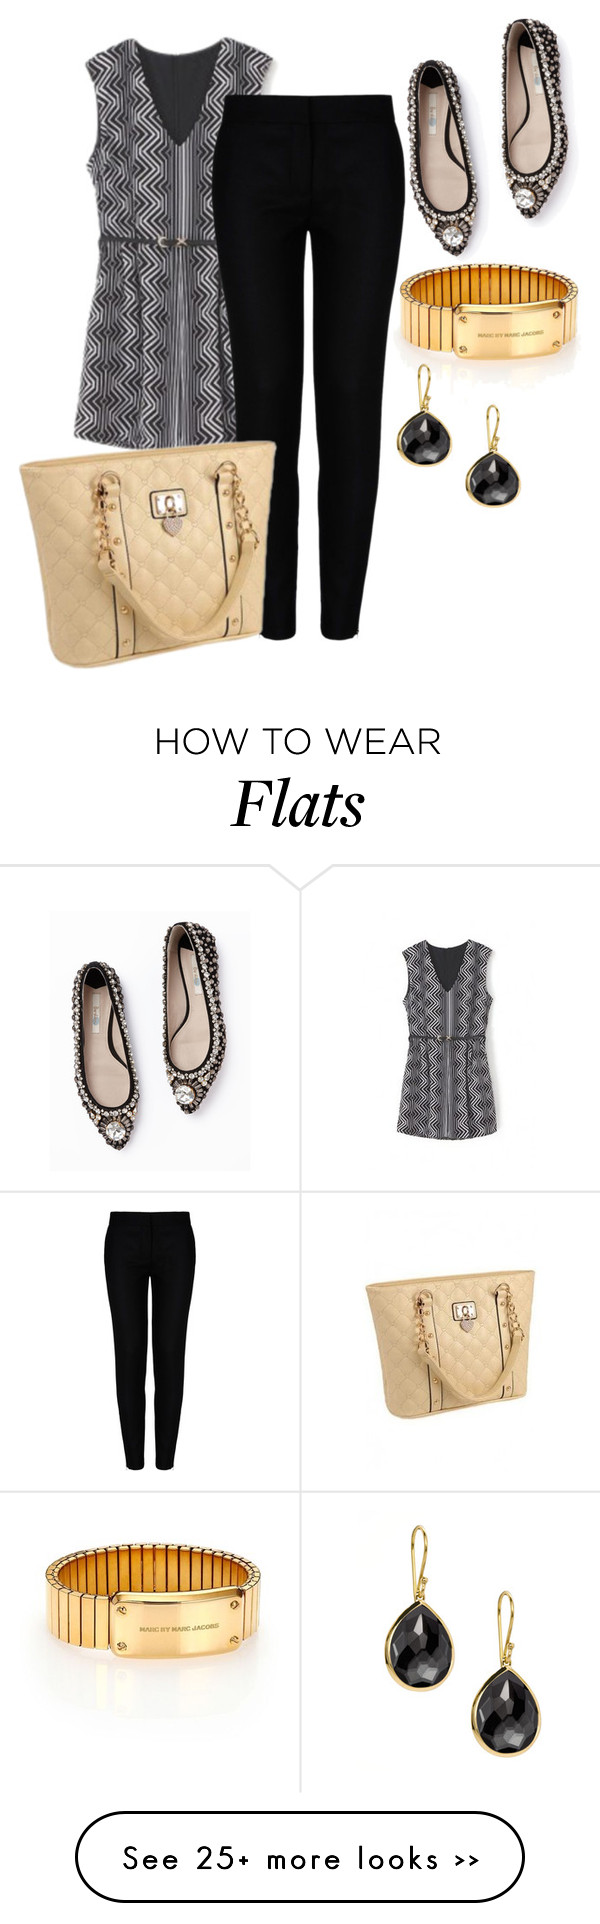 """www.lucluc.com"" by shoesclothesbagsaddict on Polyvore"